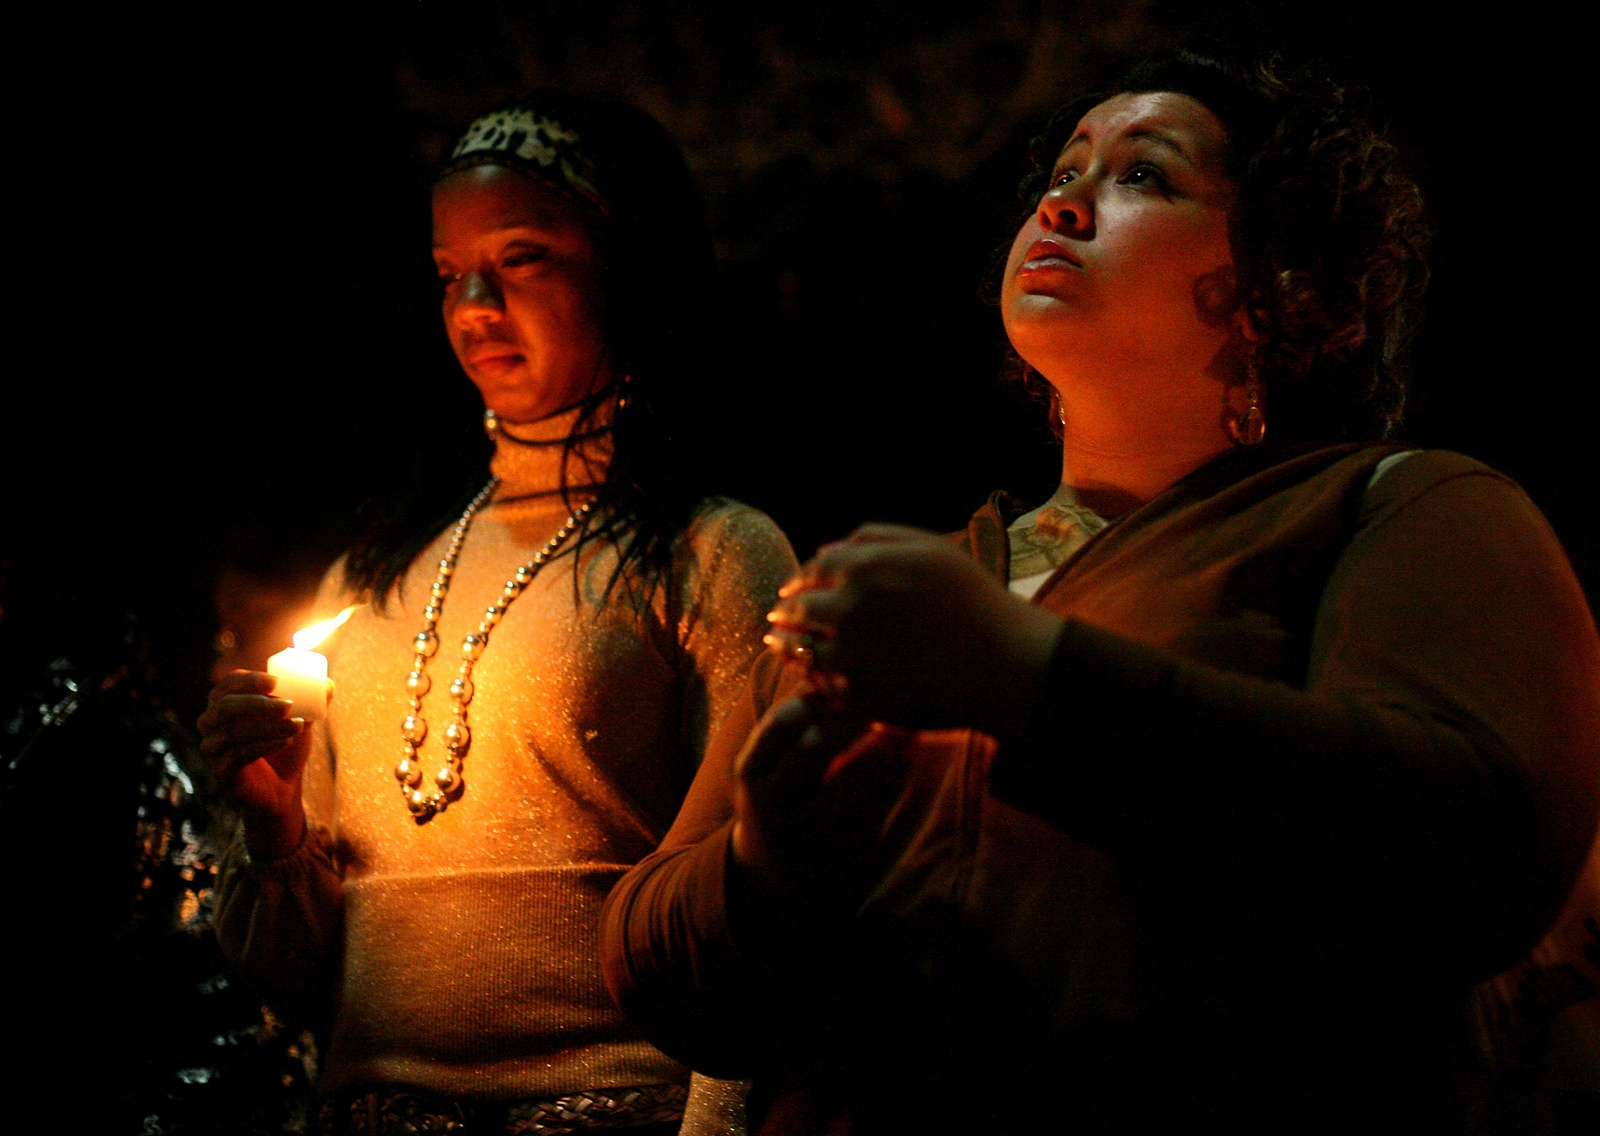 Two Western Kentucky University students mourn at a candlelight vigil the night after the Virginia Tech massacre.